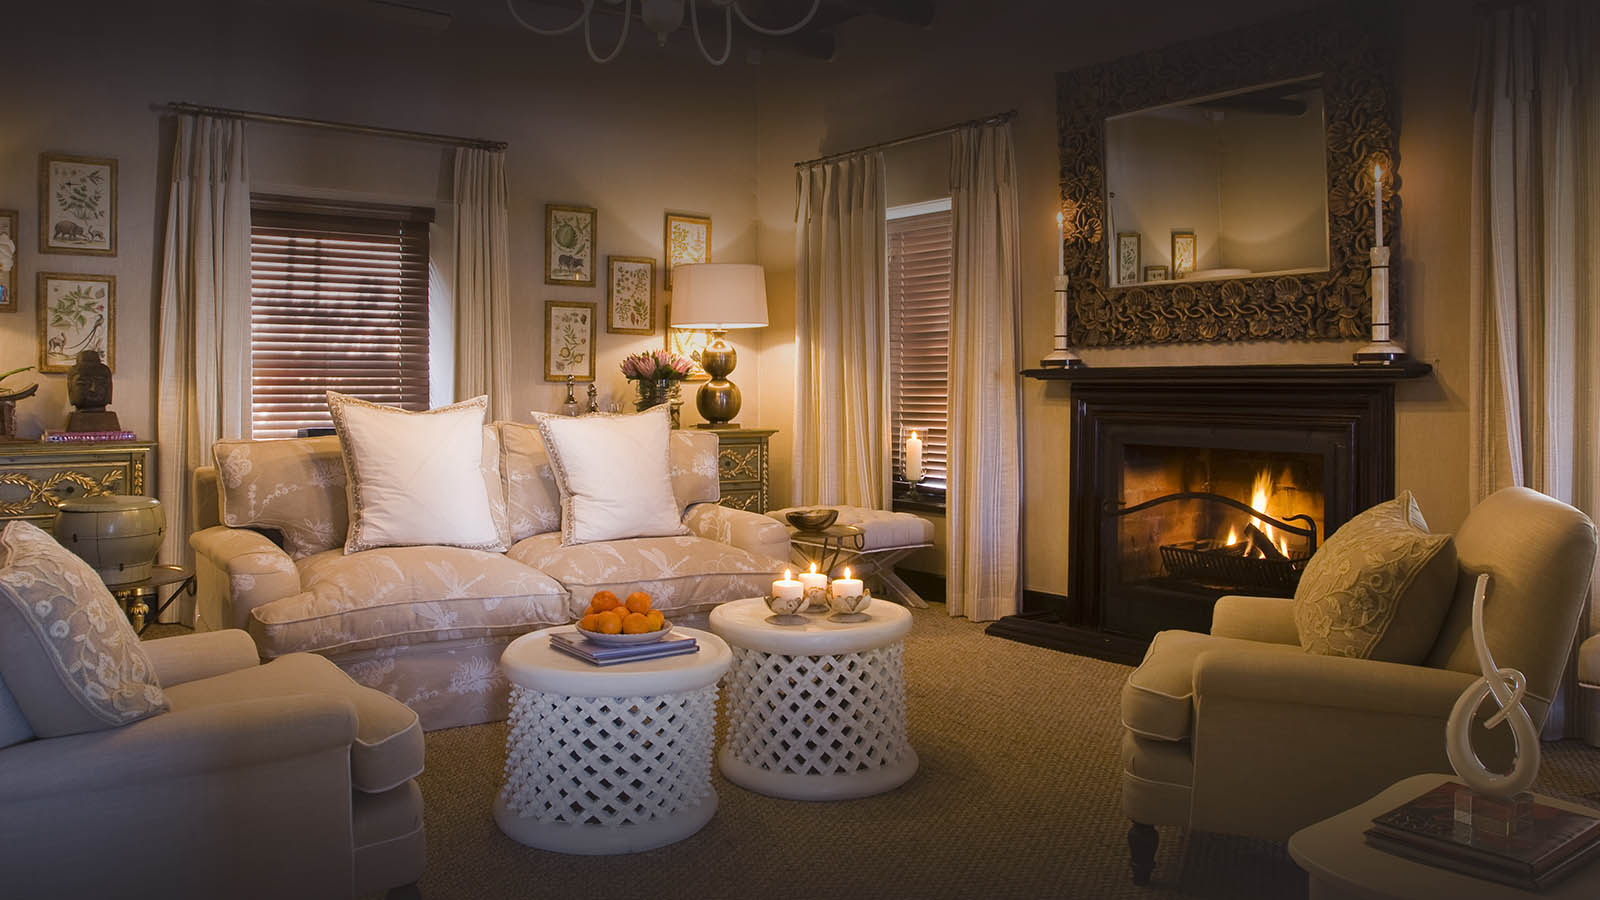 bushmans kloof winelands-lodges-south-africa-accommodation-zambia-in-style-cederberg-mountains-african-wilderness-ancient-artwork-supreme-suite